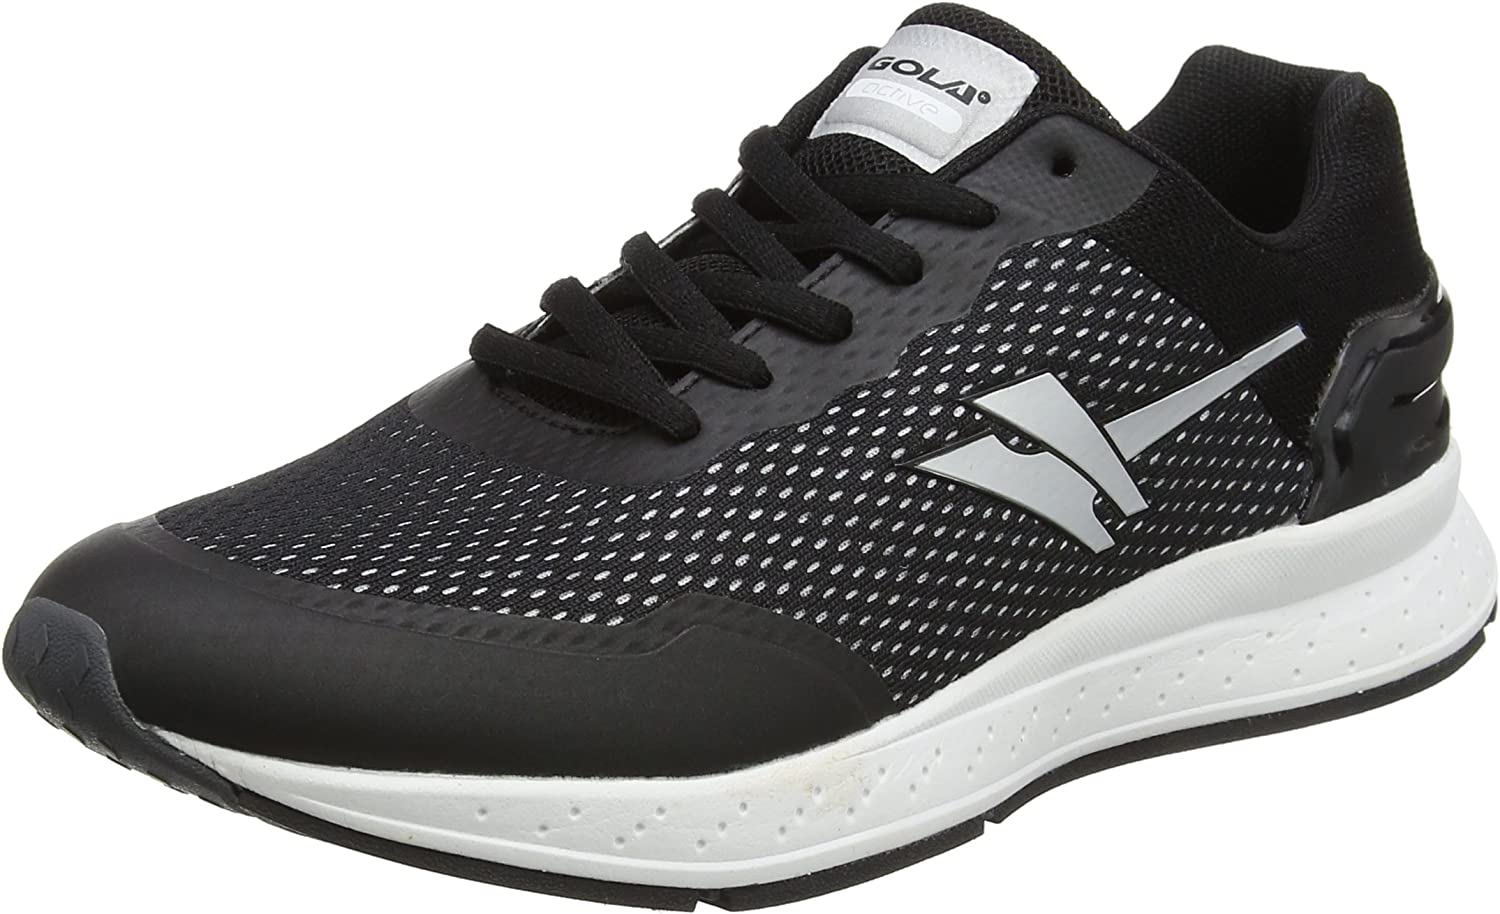 Gola Active Major Black Womens Running shoes Trail shoes